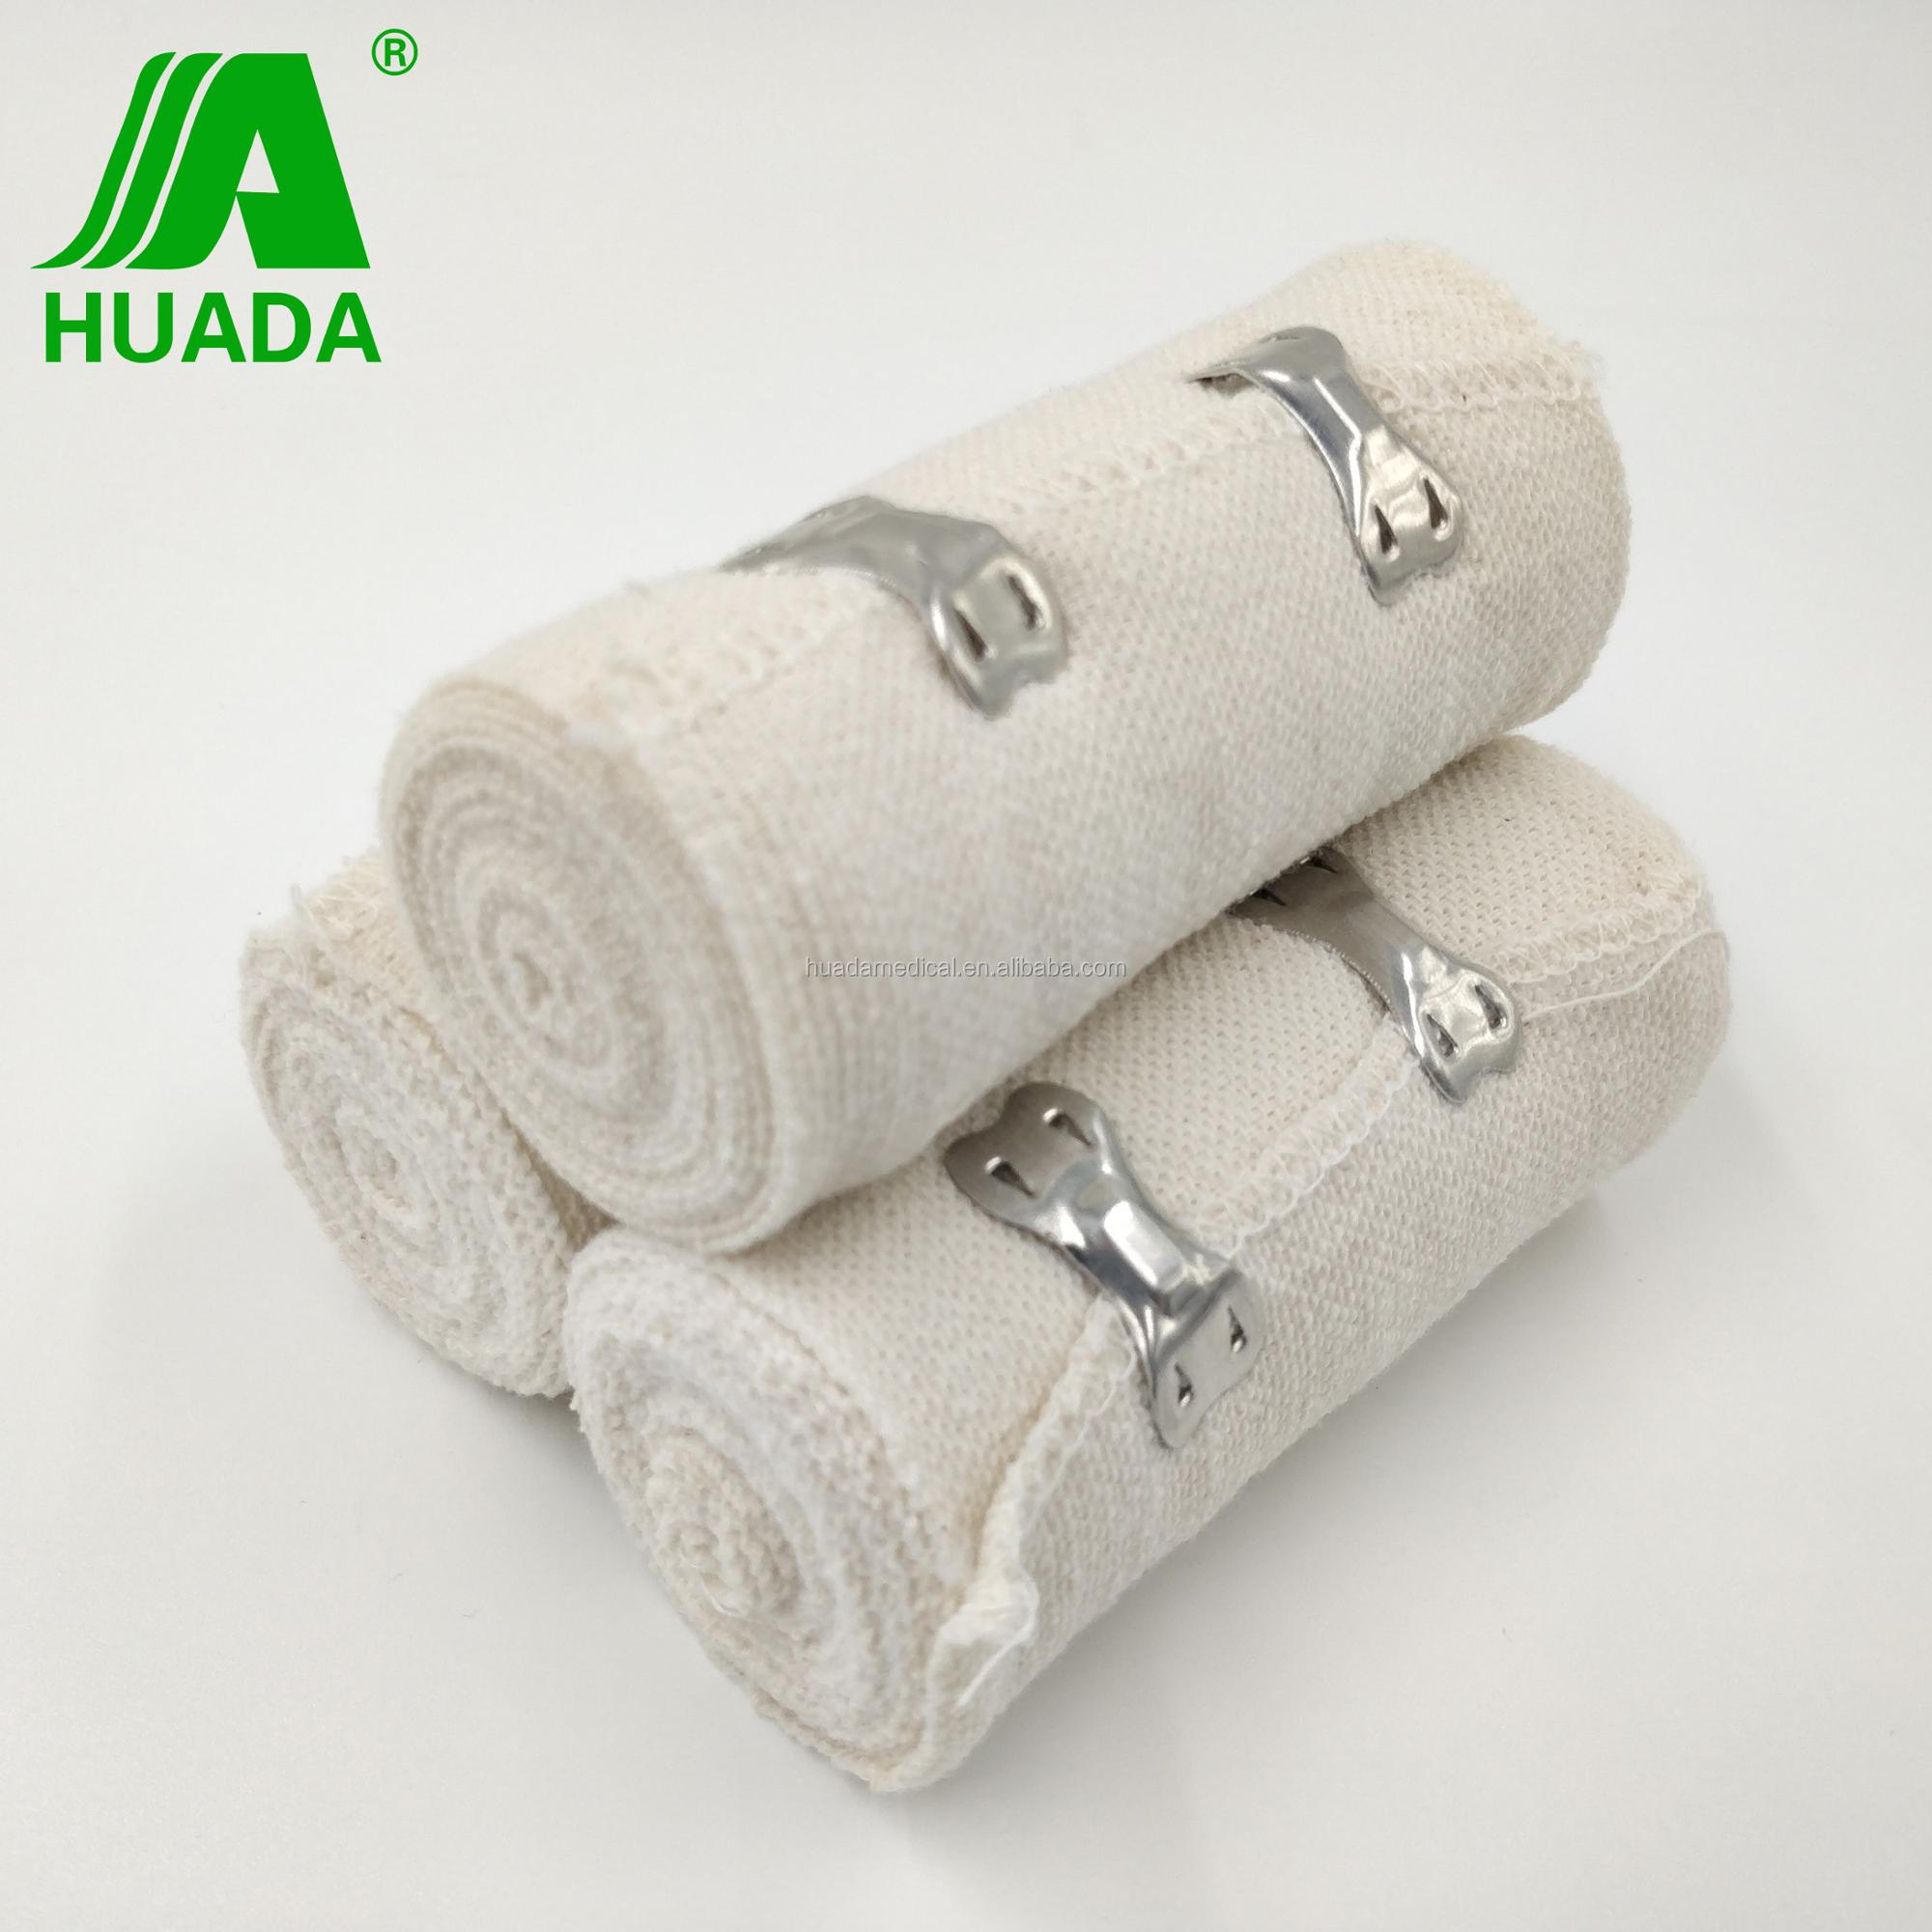 offwhite color elastic plain bandage for wound caring